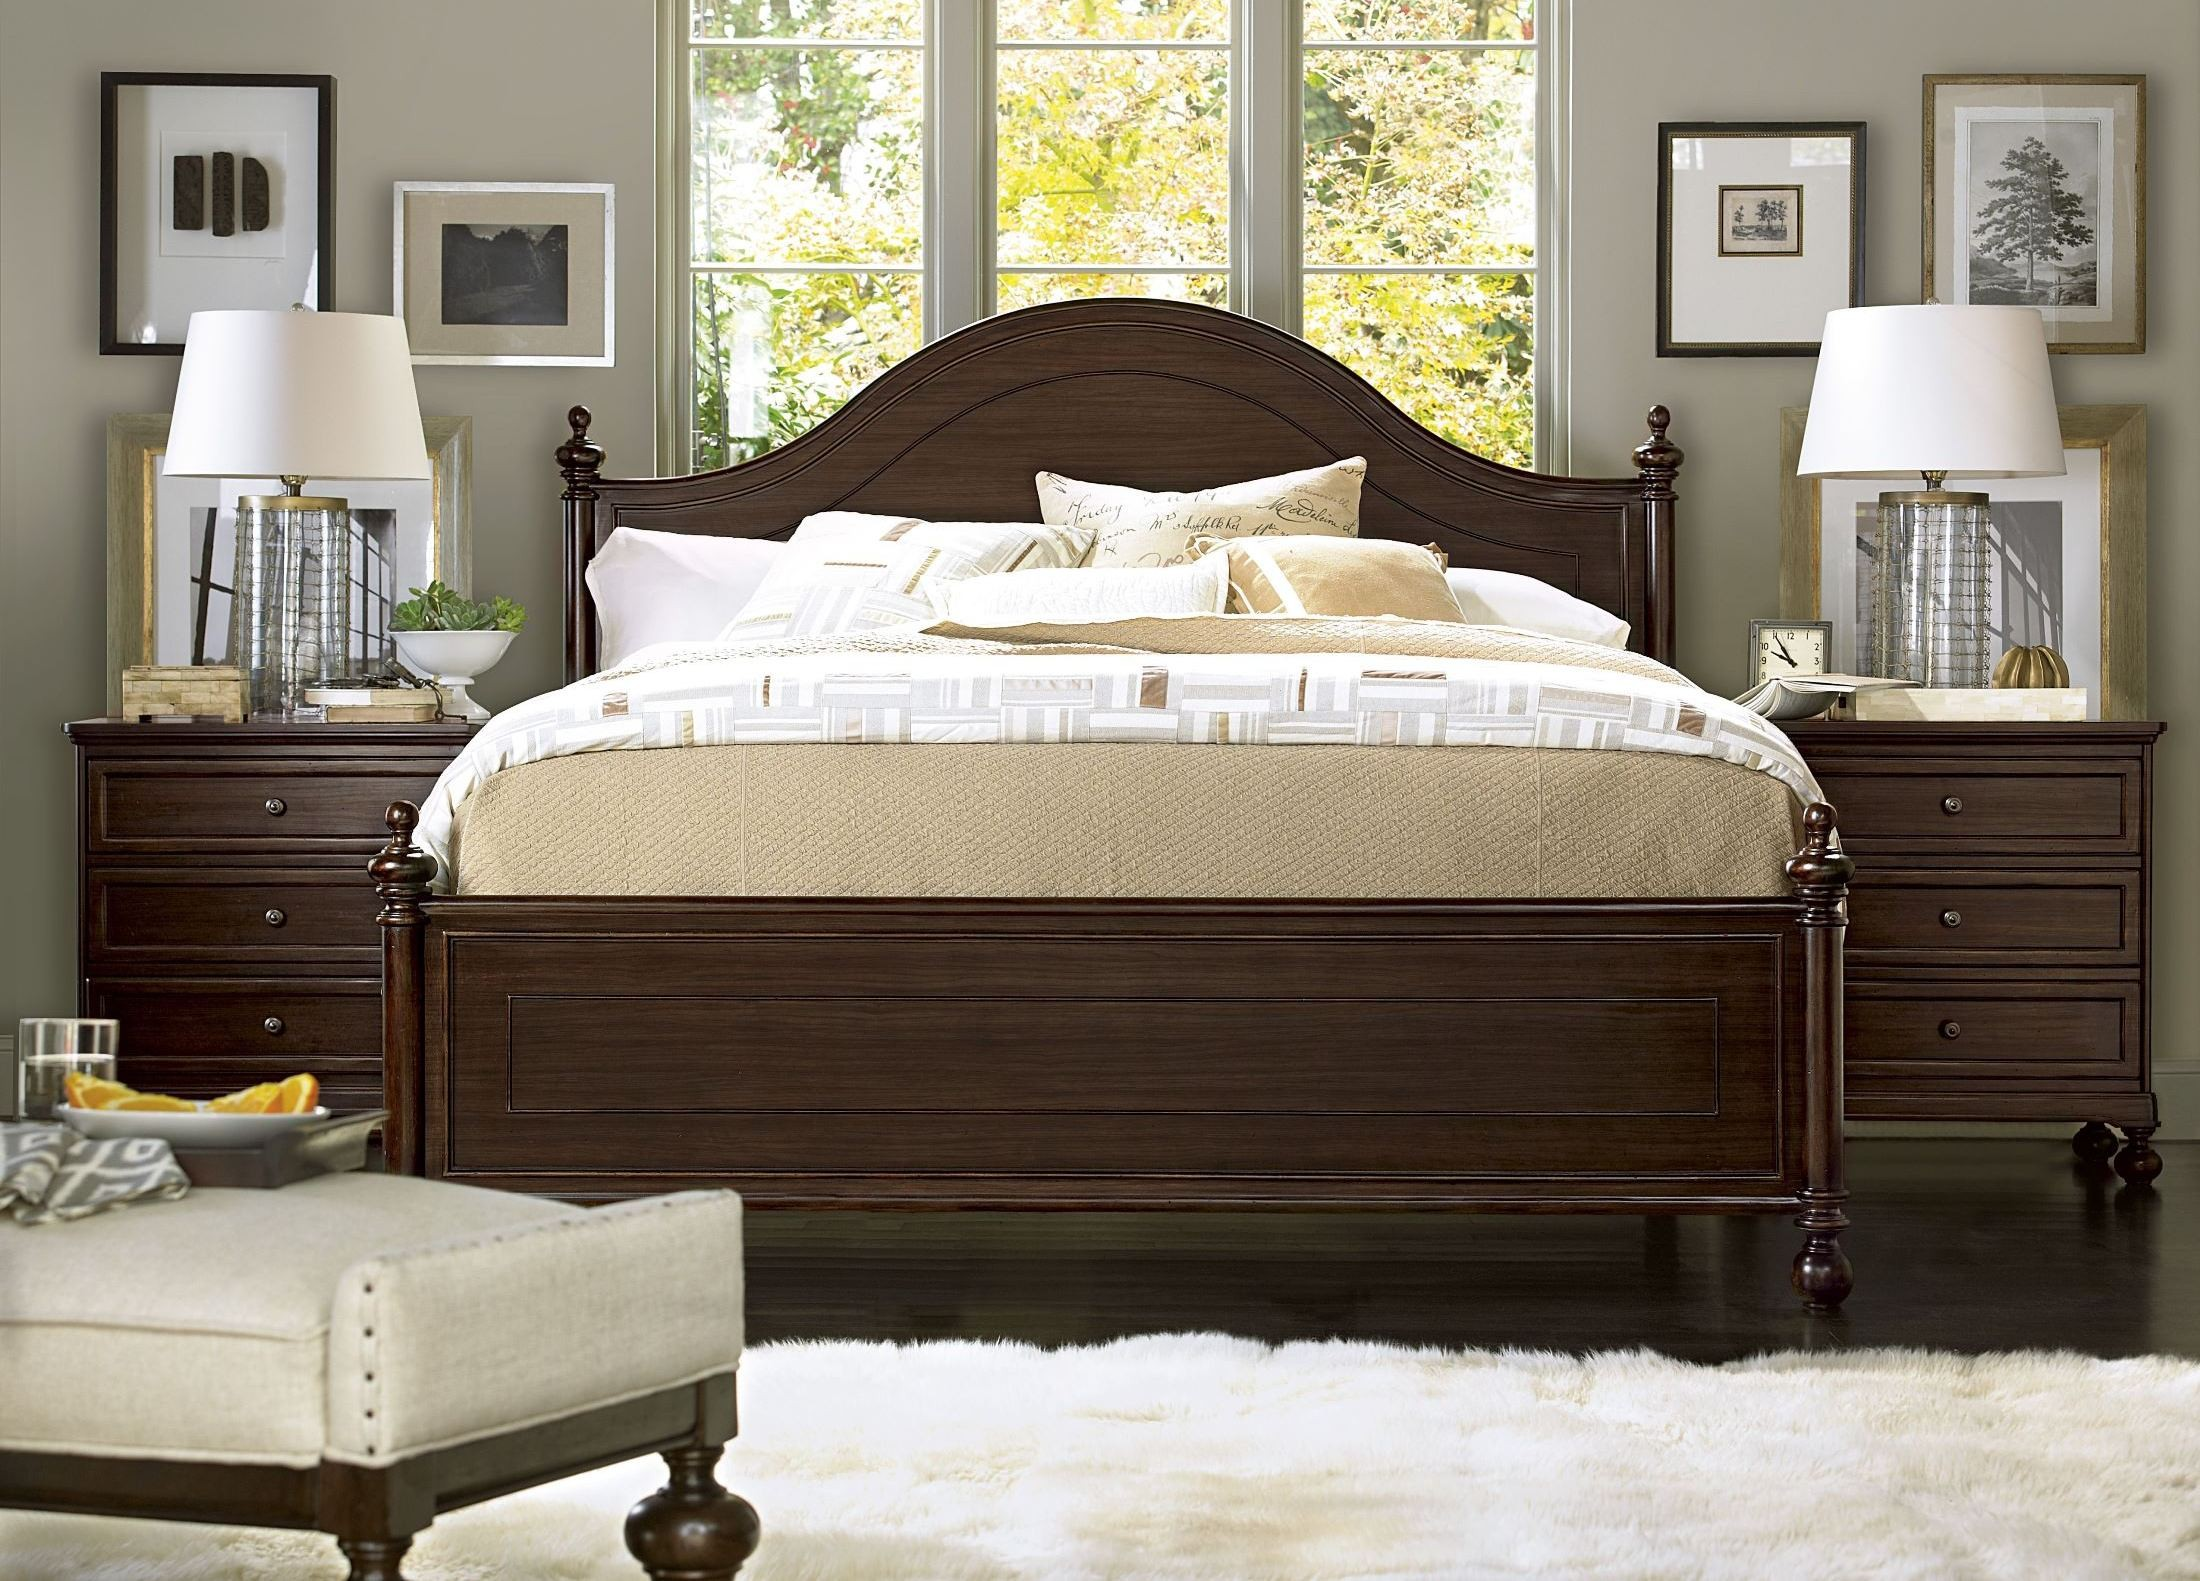 Proximity Low Post Bedroom Set From Universal 356250b Coleman Furniture